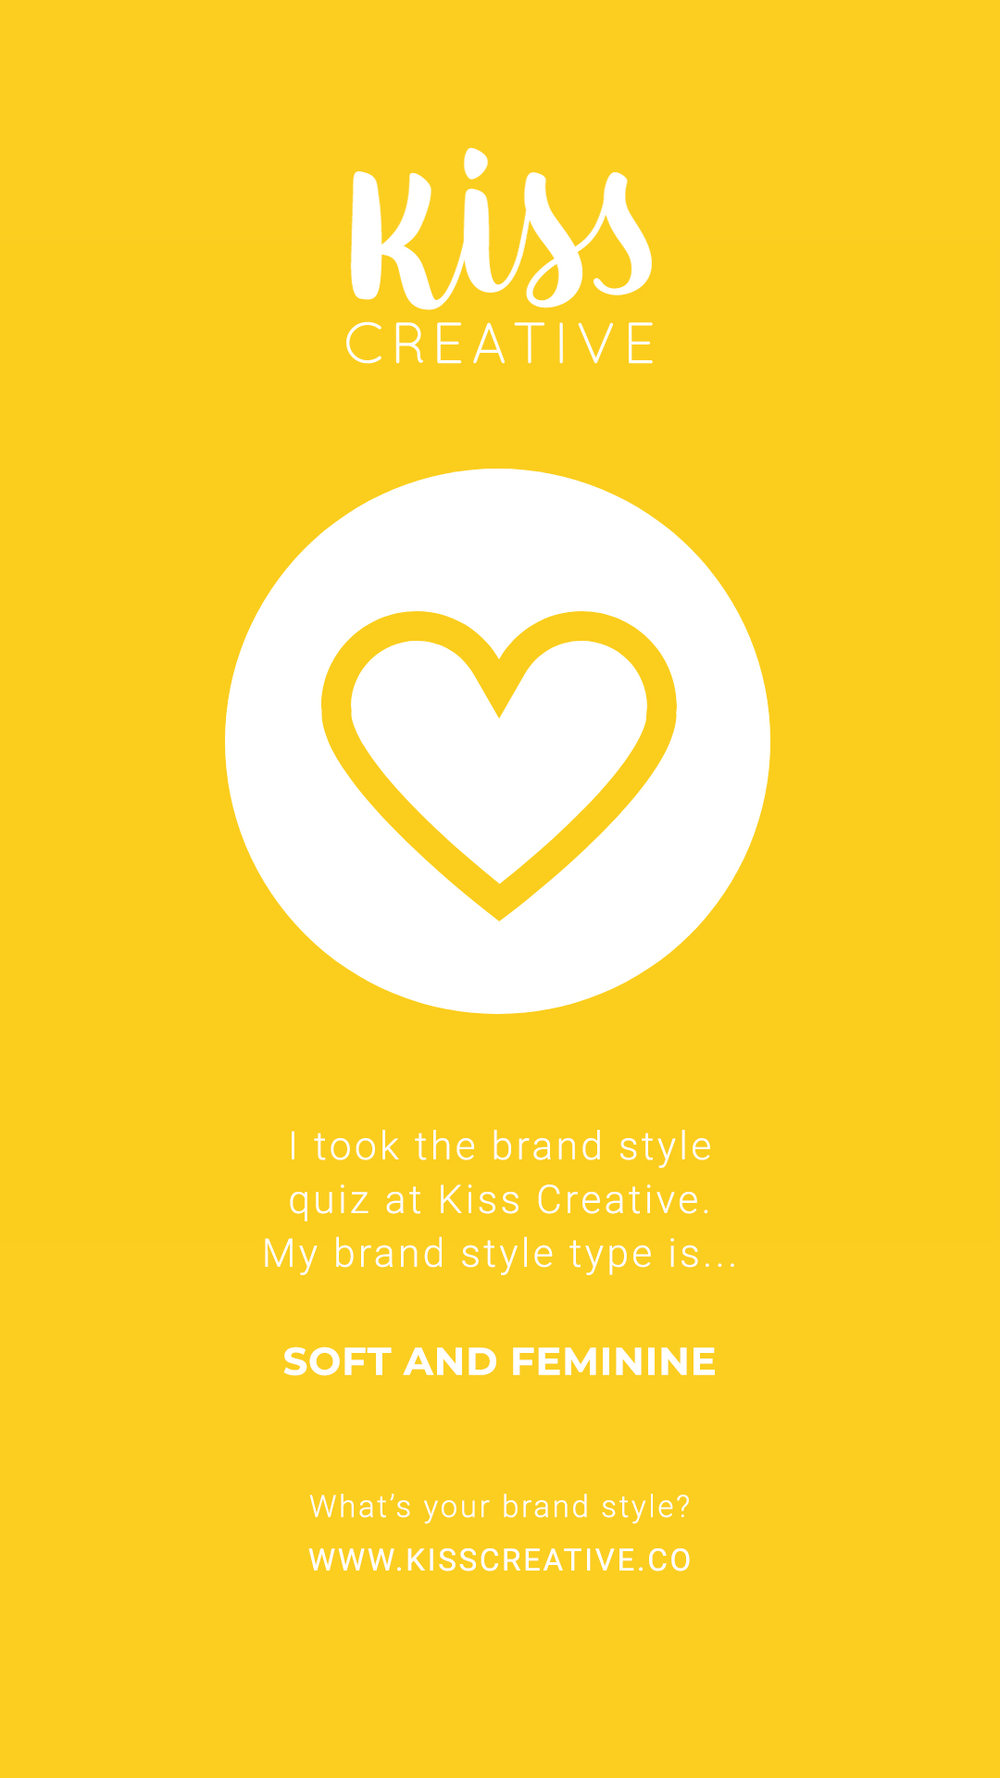 I took the Kiss Creative brand style quiz and I got Soft and Feminine!